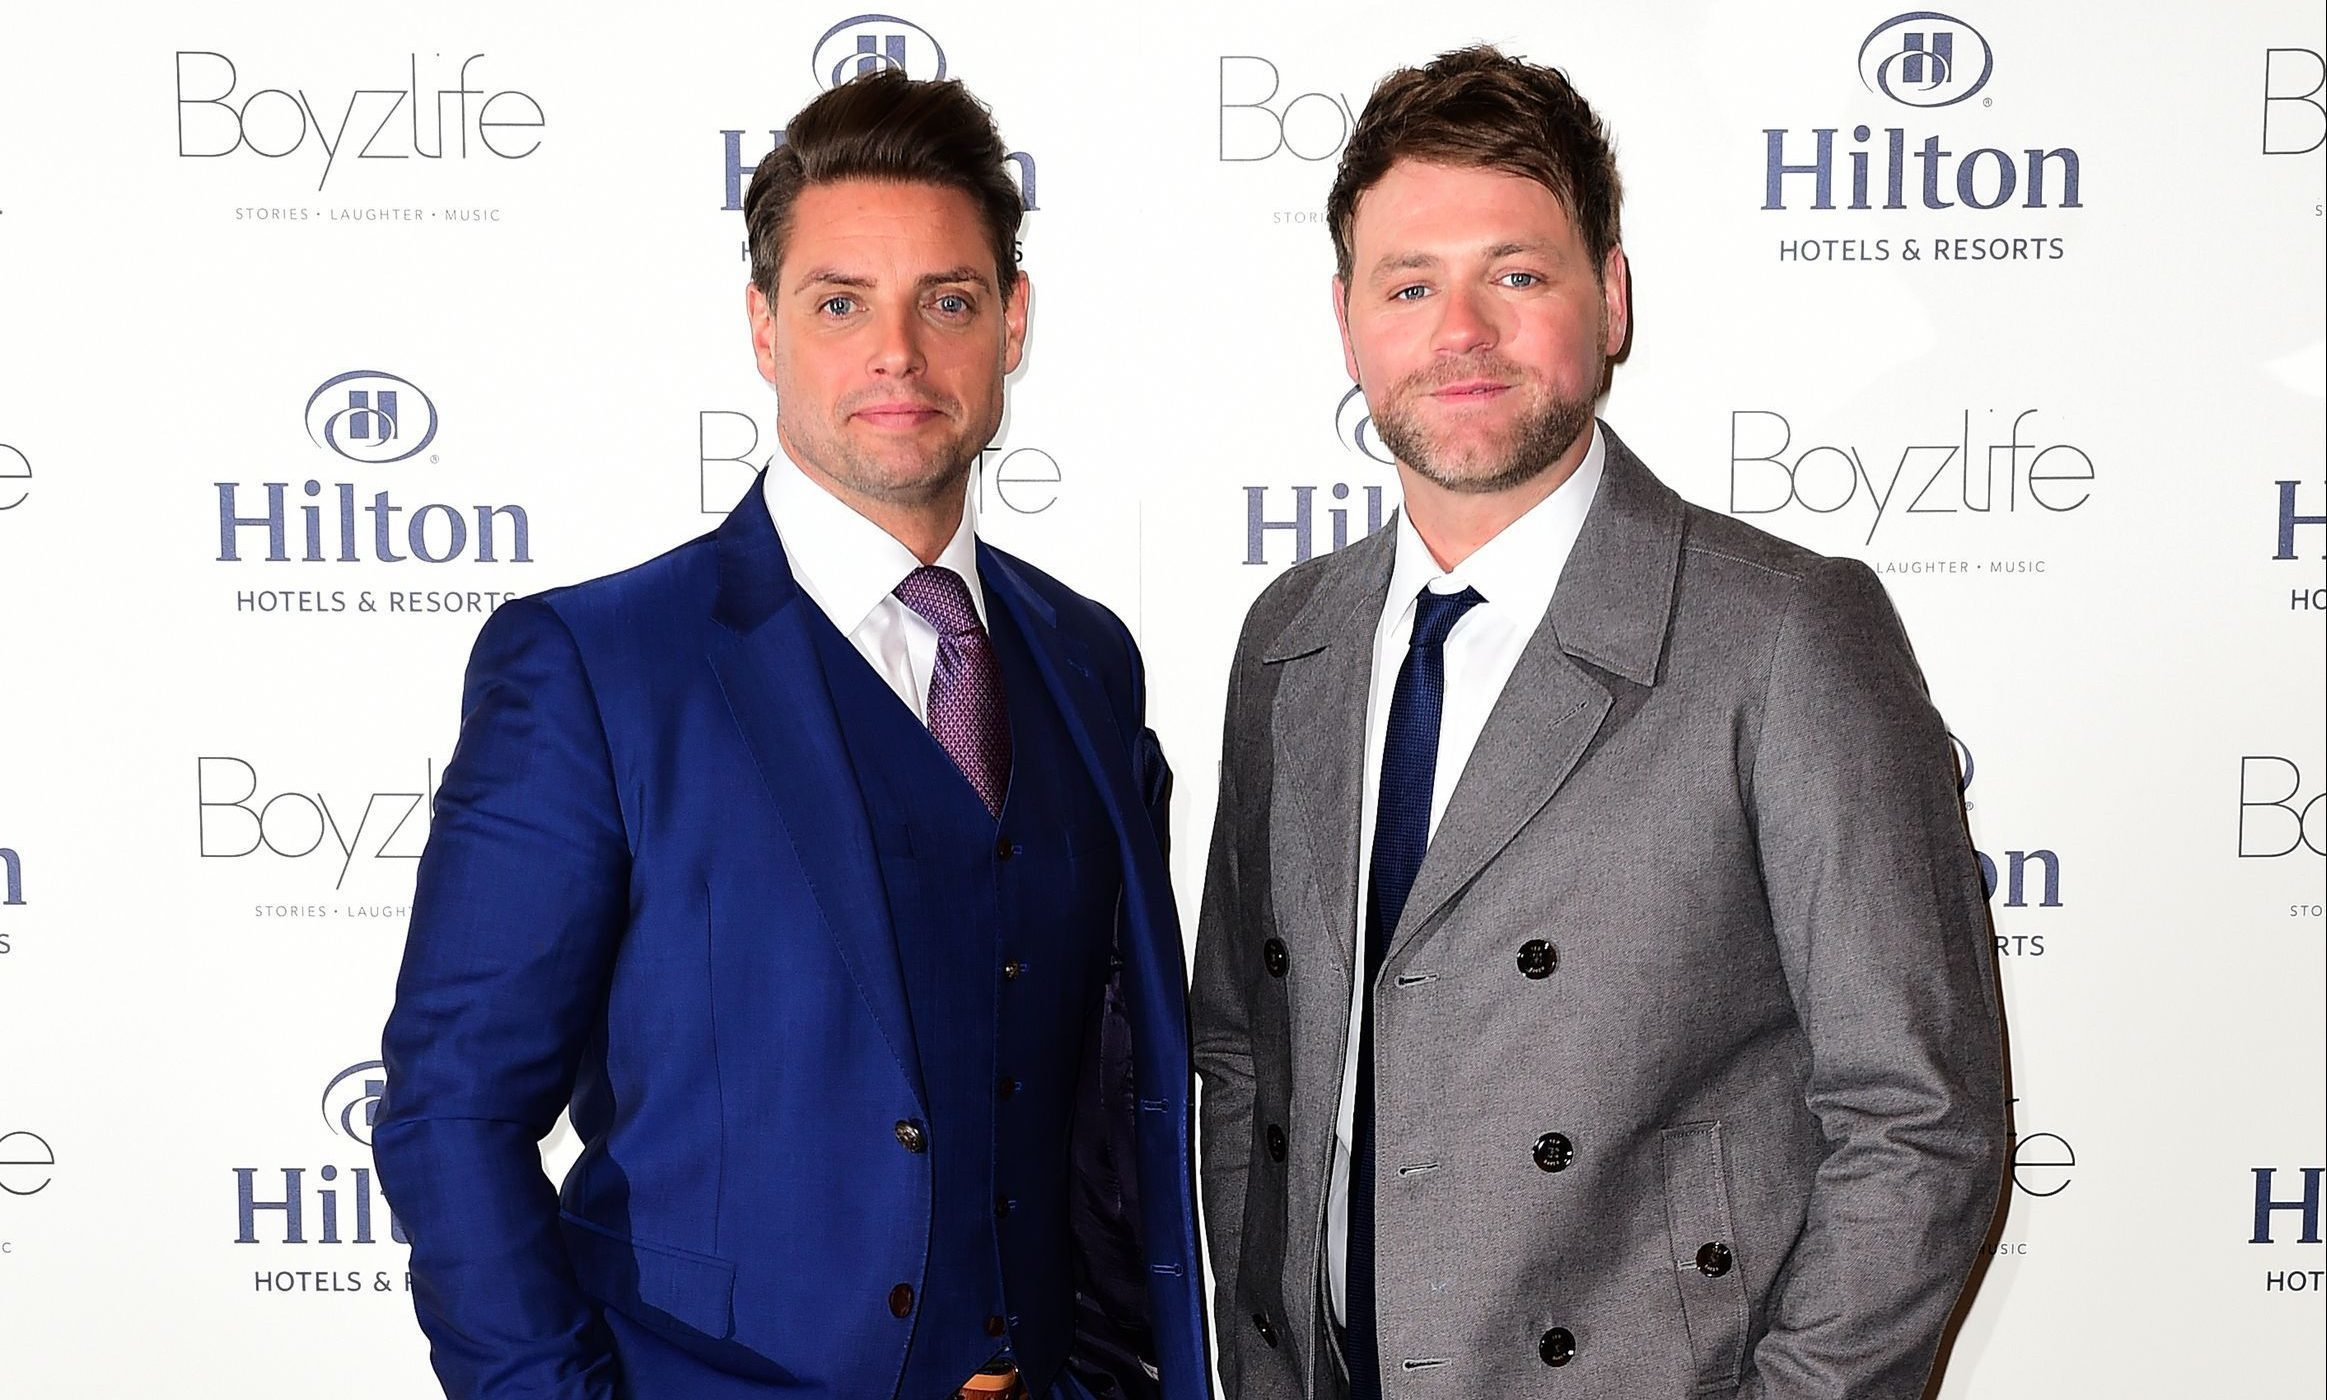 Keith Duffy (left) from Boyzone and Brian McFadden from Westlife